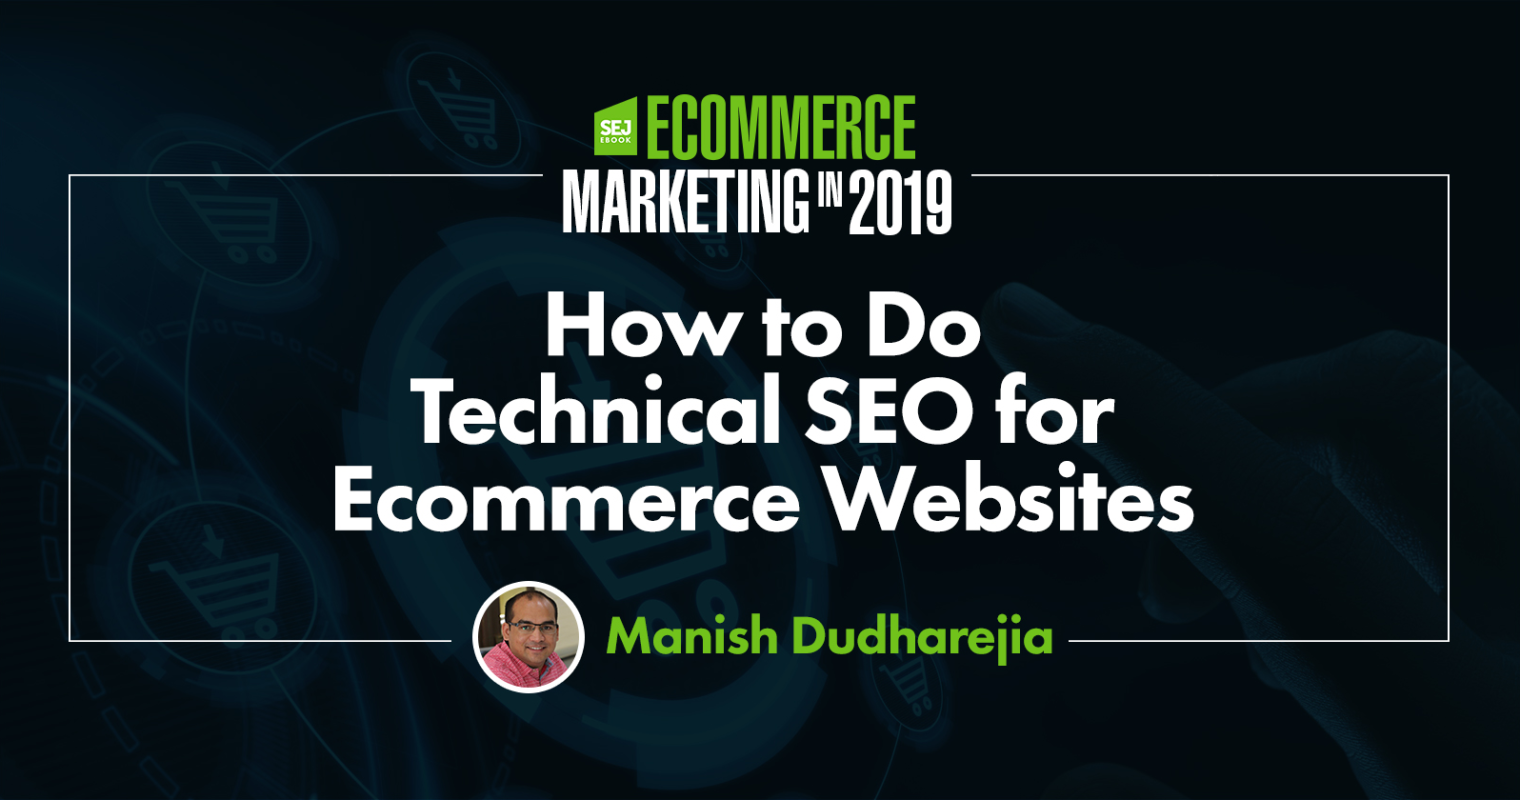 https://res.cloudinary.com/dpyy9uysx/image/upload/v1564980822/seo/how-to-do-technical-seo-for-ecommerce-websites.png